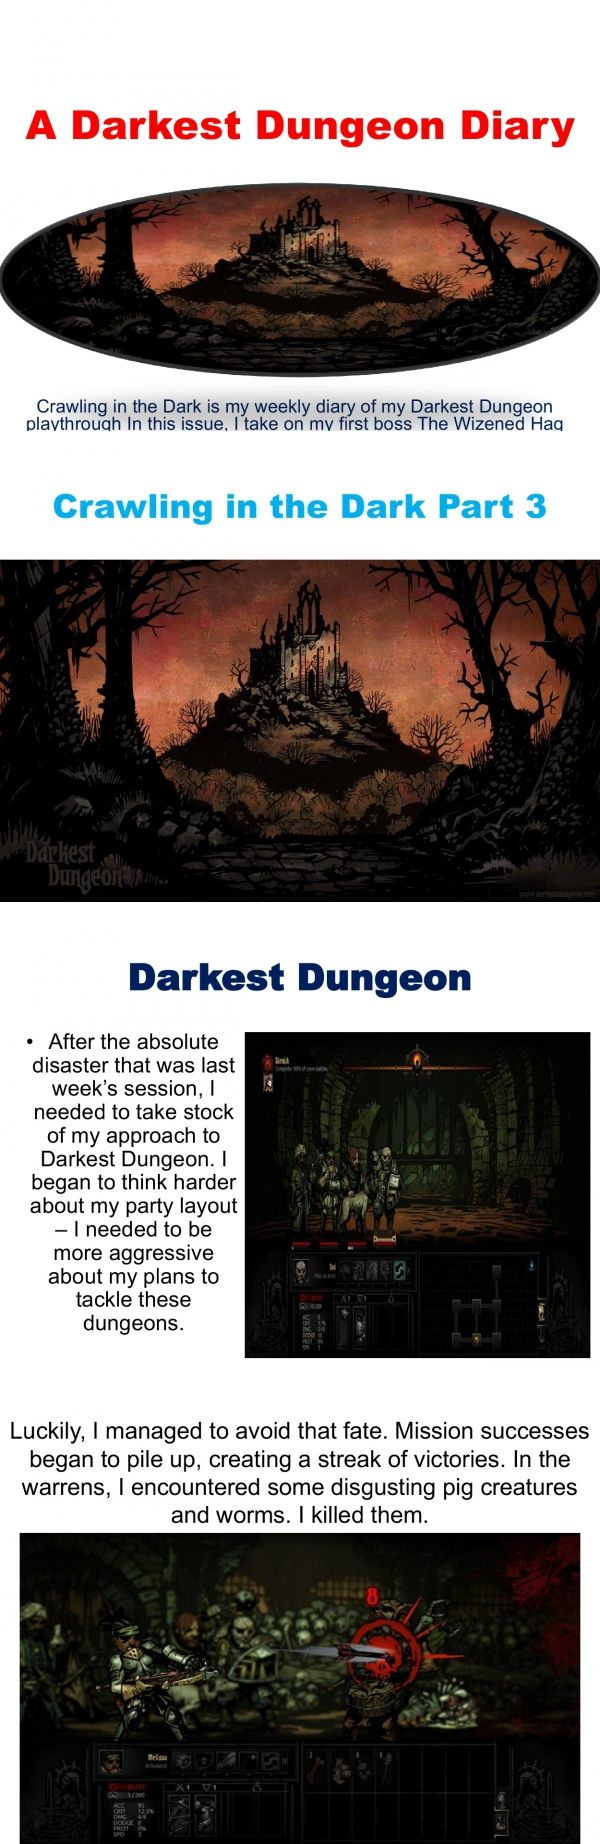 A Darkest Dungeon Diary - Magazine with 9 pages: Crawling in the Dark is a weekly diary of my experience with the permadeath dungeon crawler and frustration simulator known as Darkest Dungeon. Half role-playing, half story-telling, and half review, join me on a math-challenged journey through heart attacks, Eldritch horrors, and the year's best narrator.